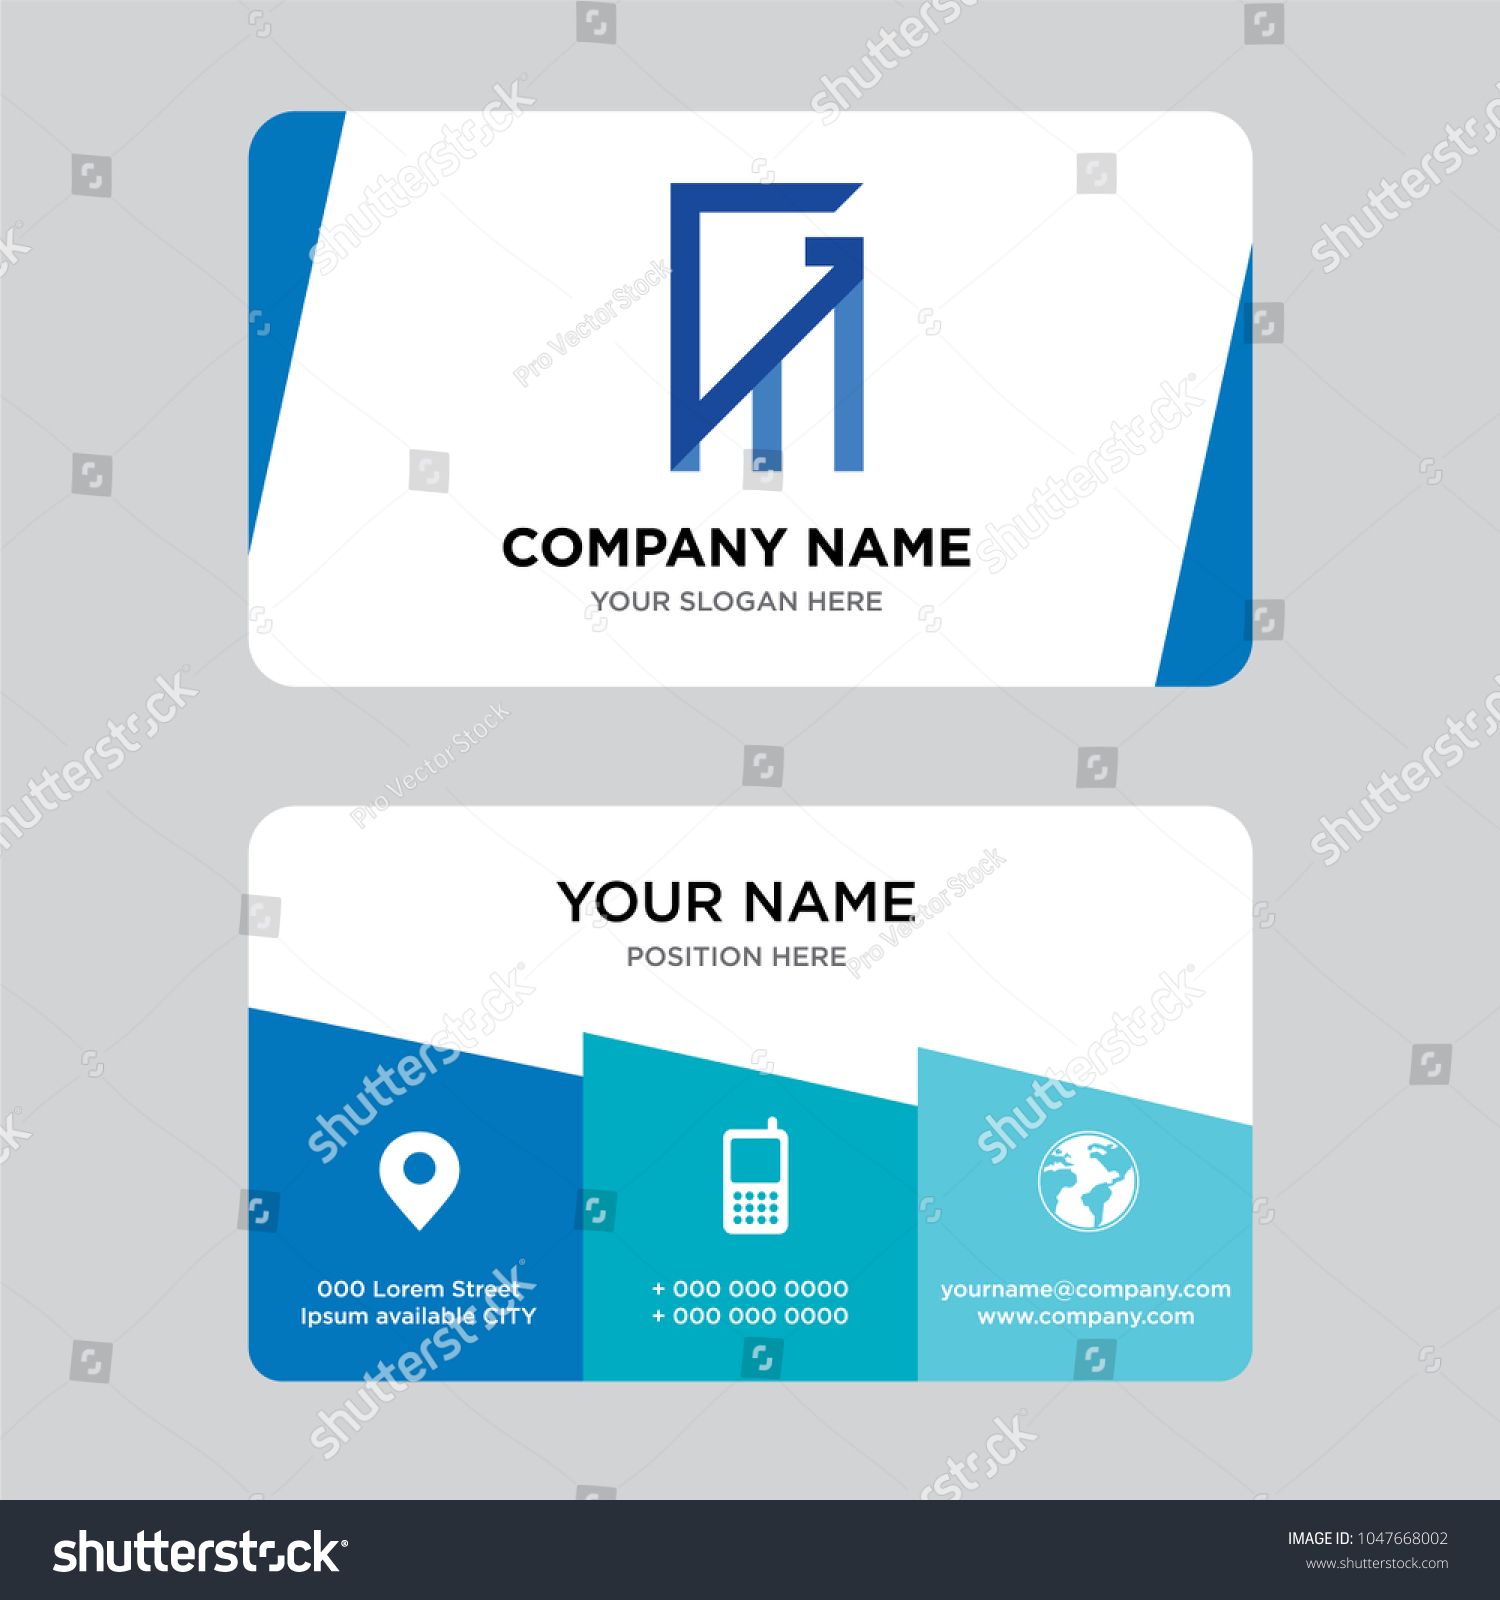 Gmmg Business Card Design Template Visiting Stock Vector 1047668002 ...